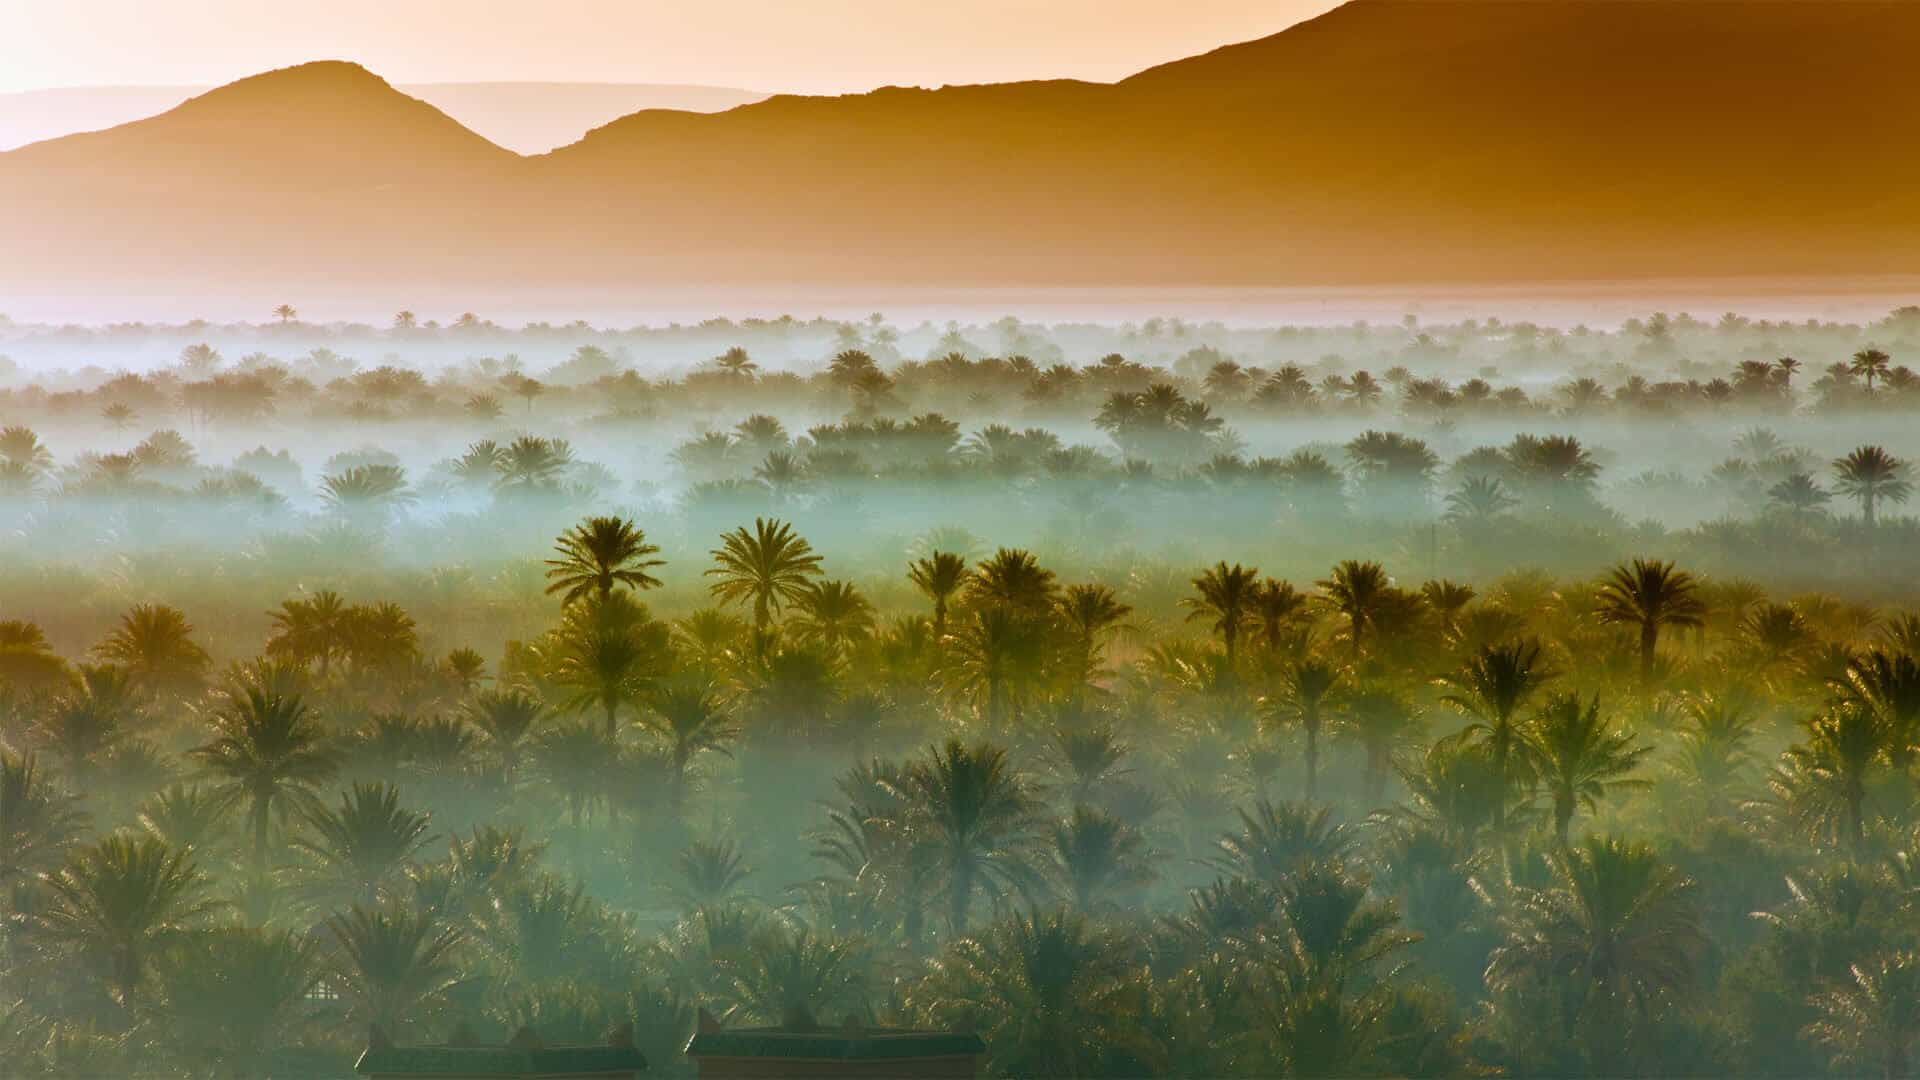 Desert groves at Zagora